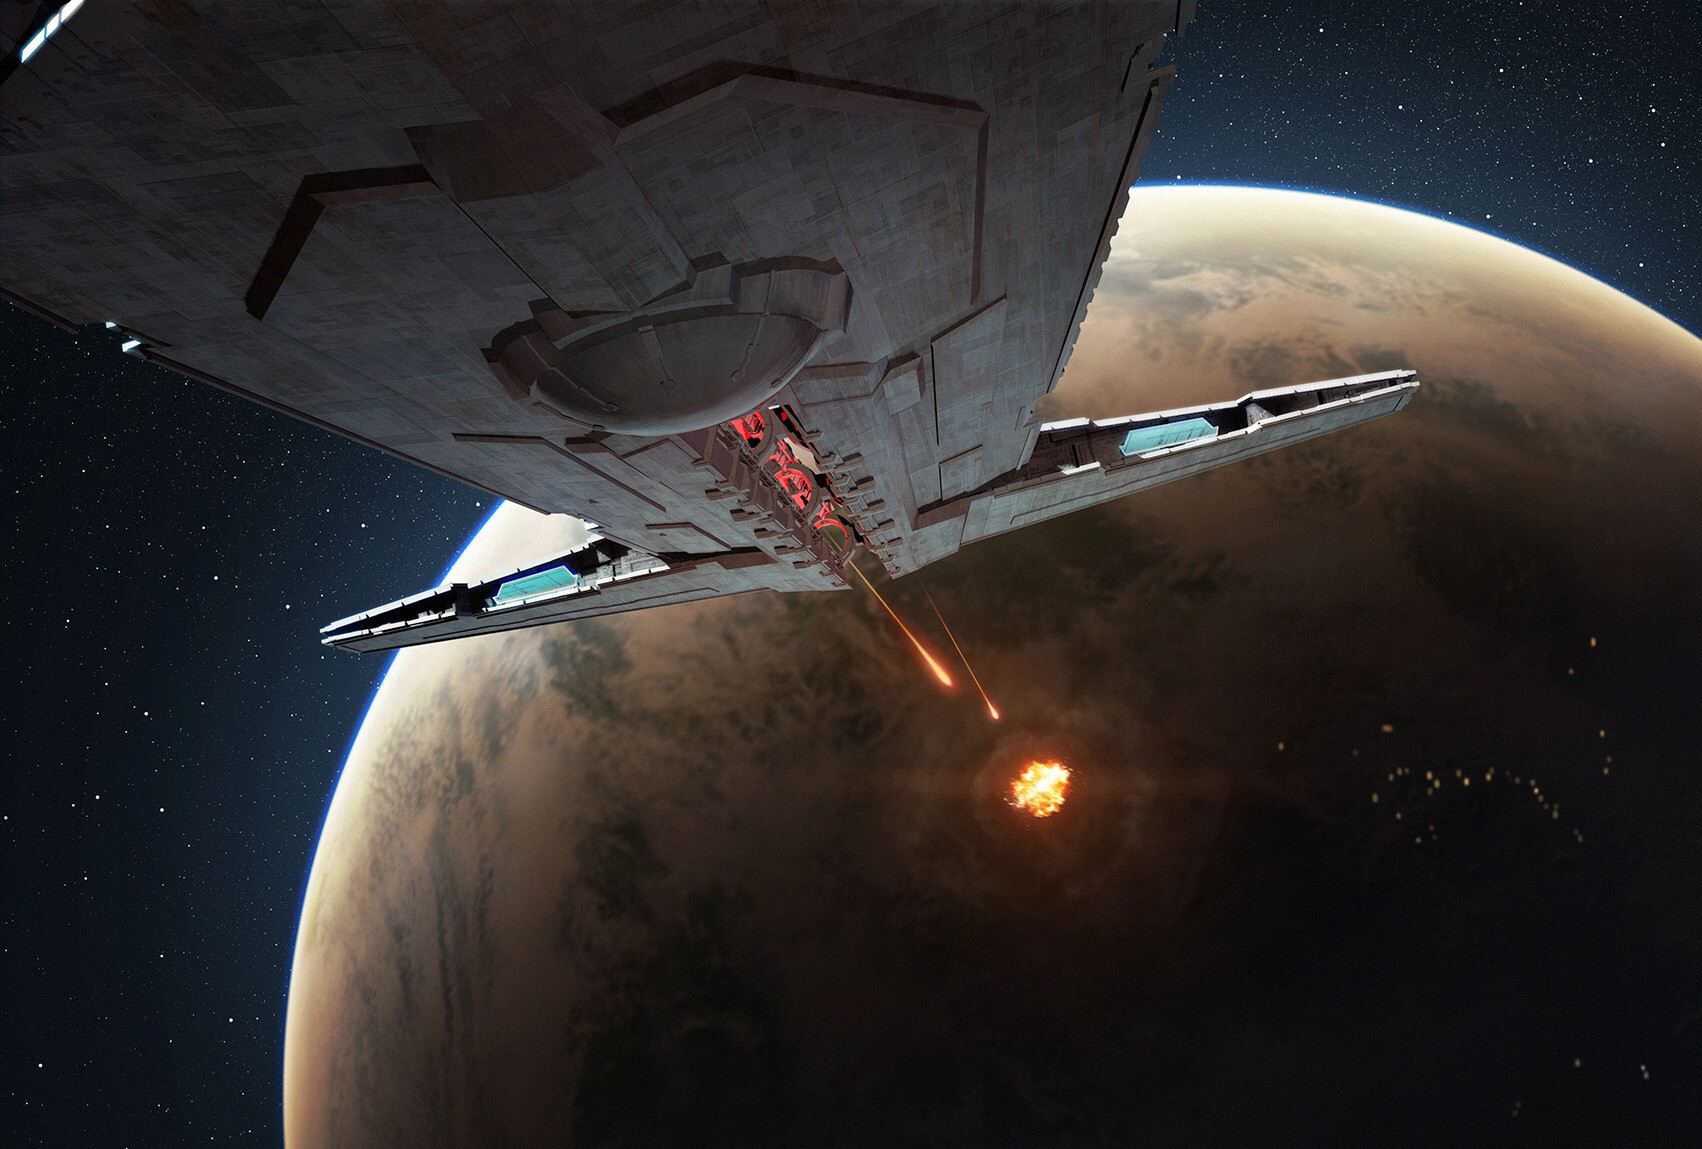 Star Wars Episode Ix Onager Star Destroyer Connected To Sith Fleet